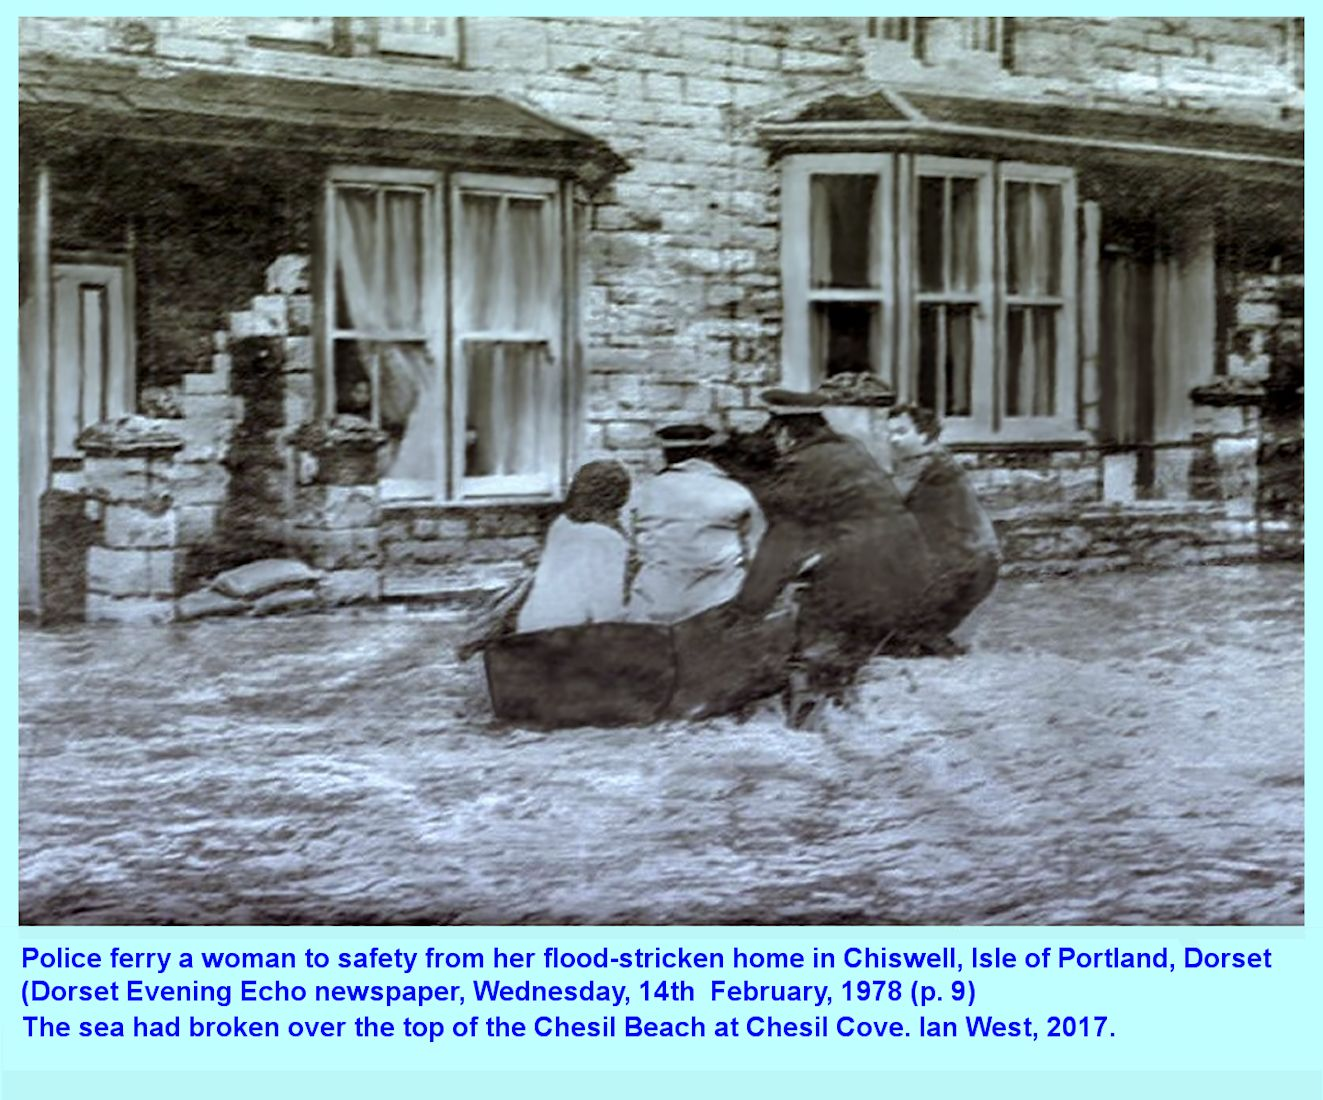 Rescue of a resident from the sea flood at Chiswell, behind the Chesil Bank, Isle of Portland, Dorset in February, 1978, by the police with a boat; someone else waits at a window